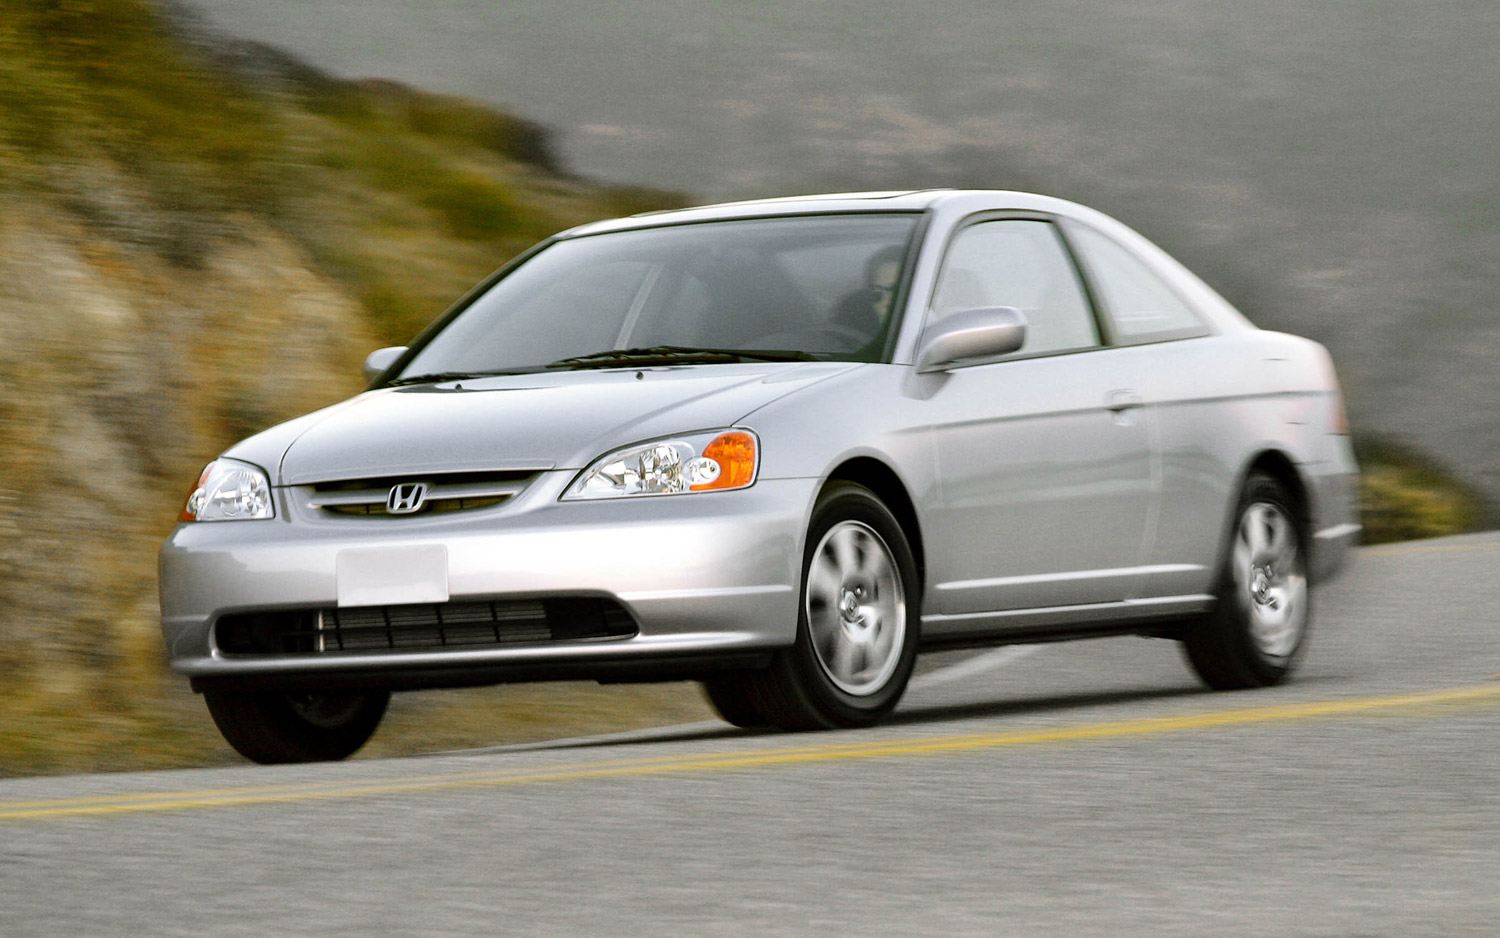 Honda, Toyota, Nissan, and Mazda Recalling 3.4 Million Cars for Airbag Issue